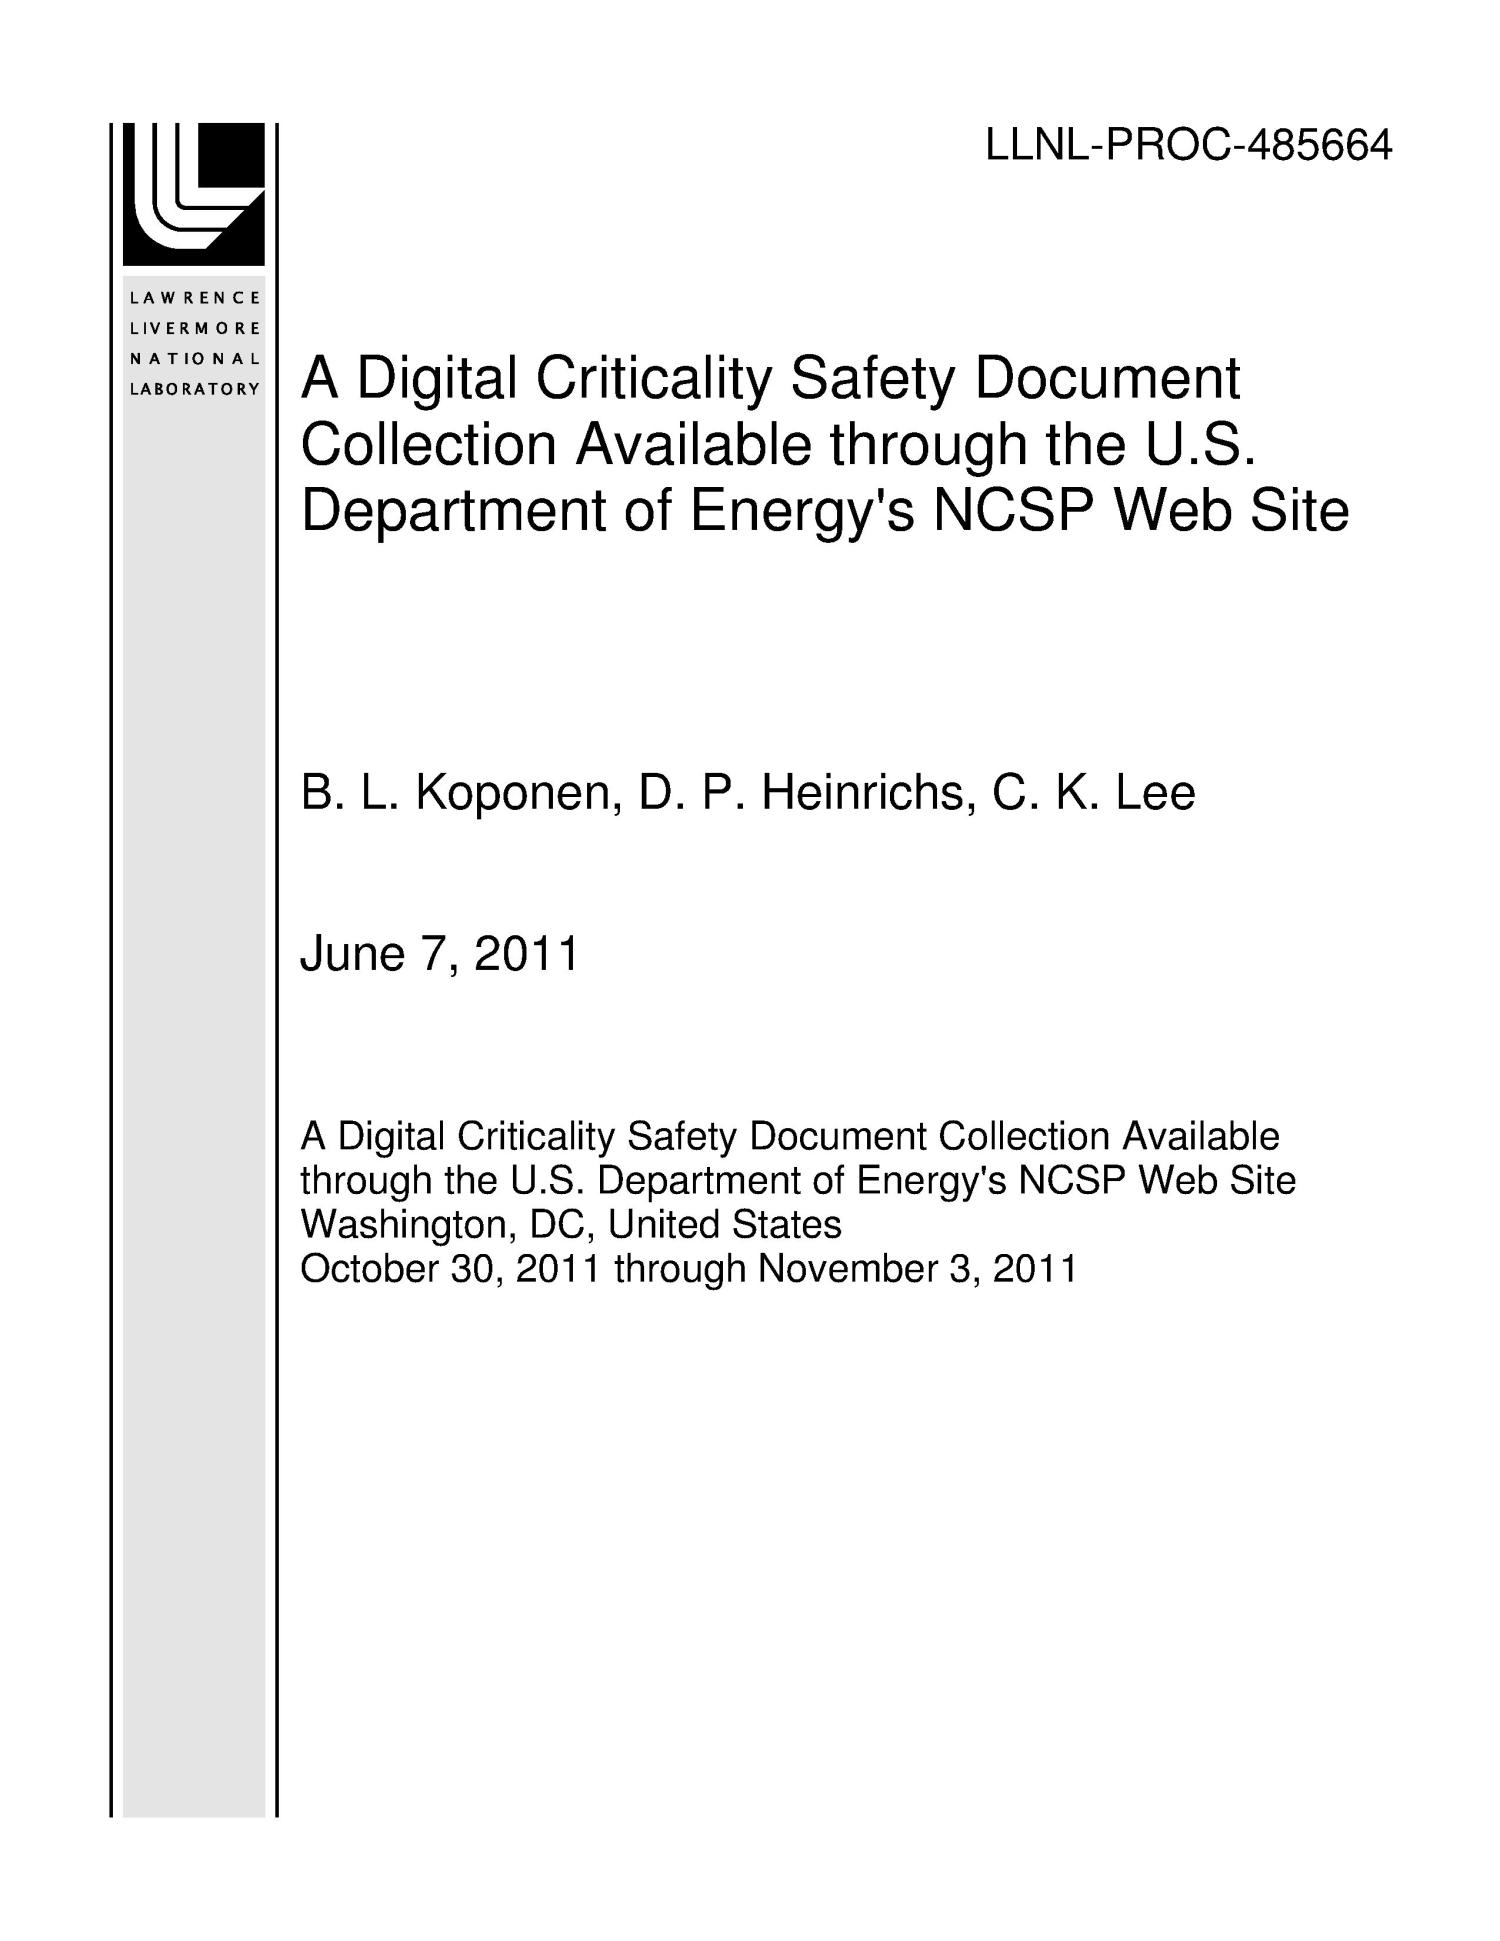 A Digital Criticality Safety Document Collection Available through the U.S. Department of Energy's NCSP Web Site                                                                                                      [Sequence #]: 1 of 4